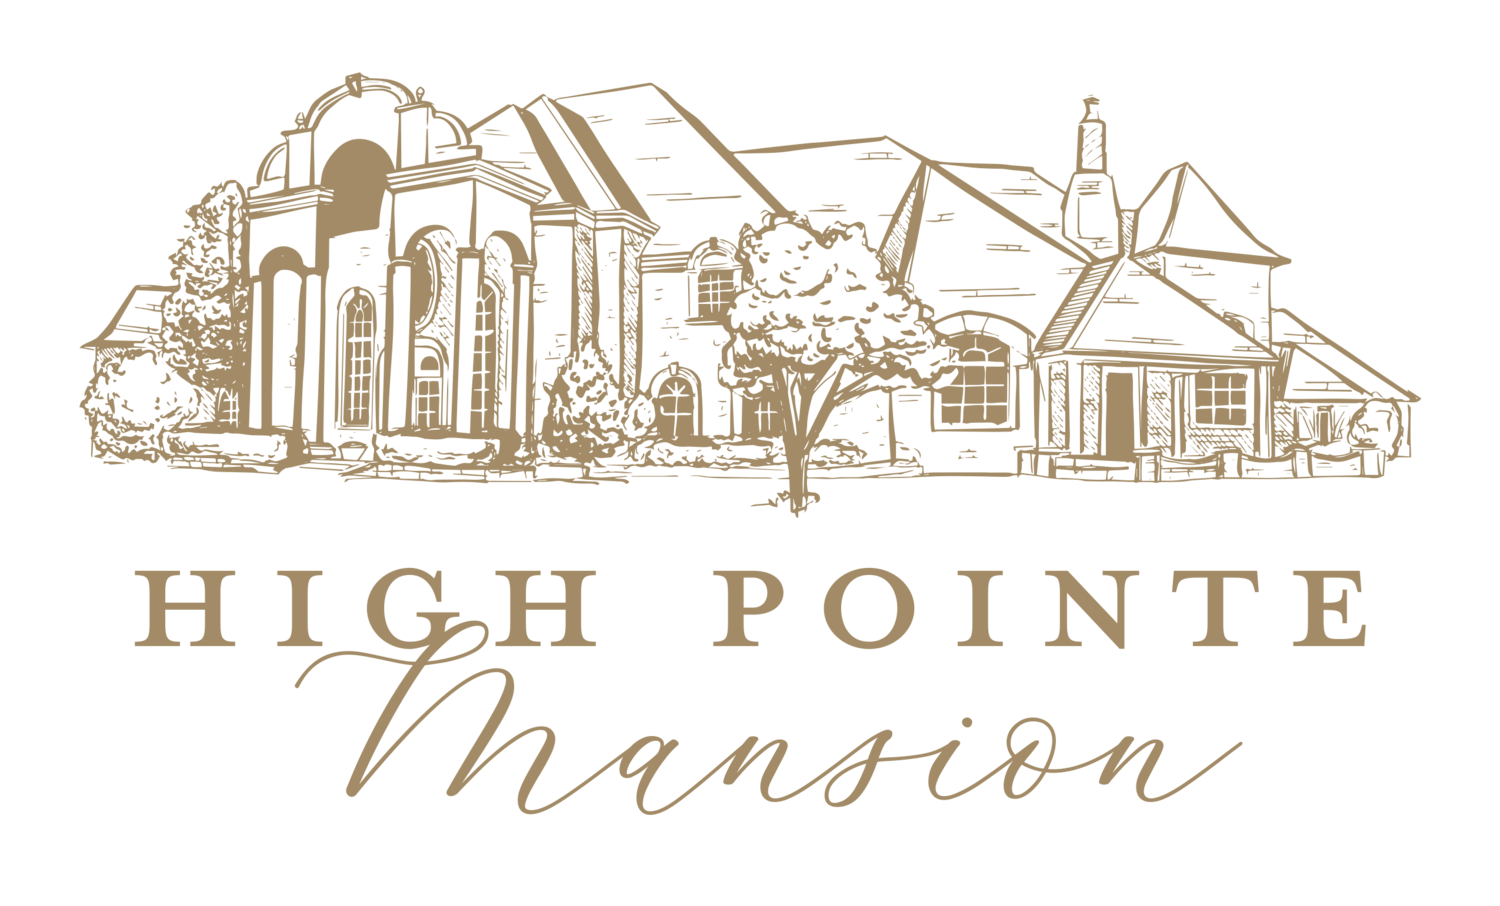 High Pointe Mansion